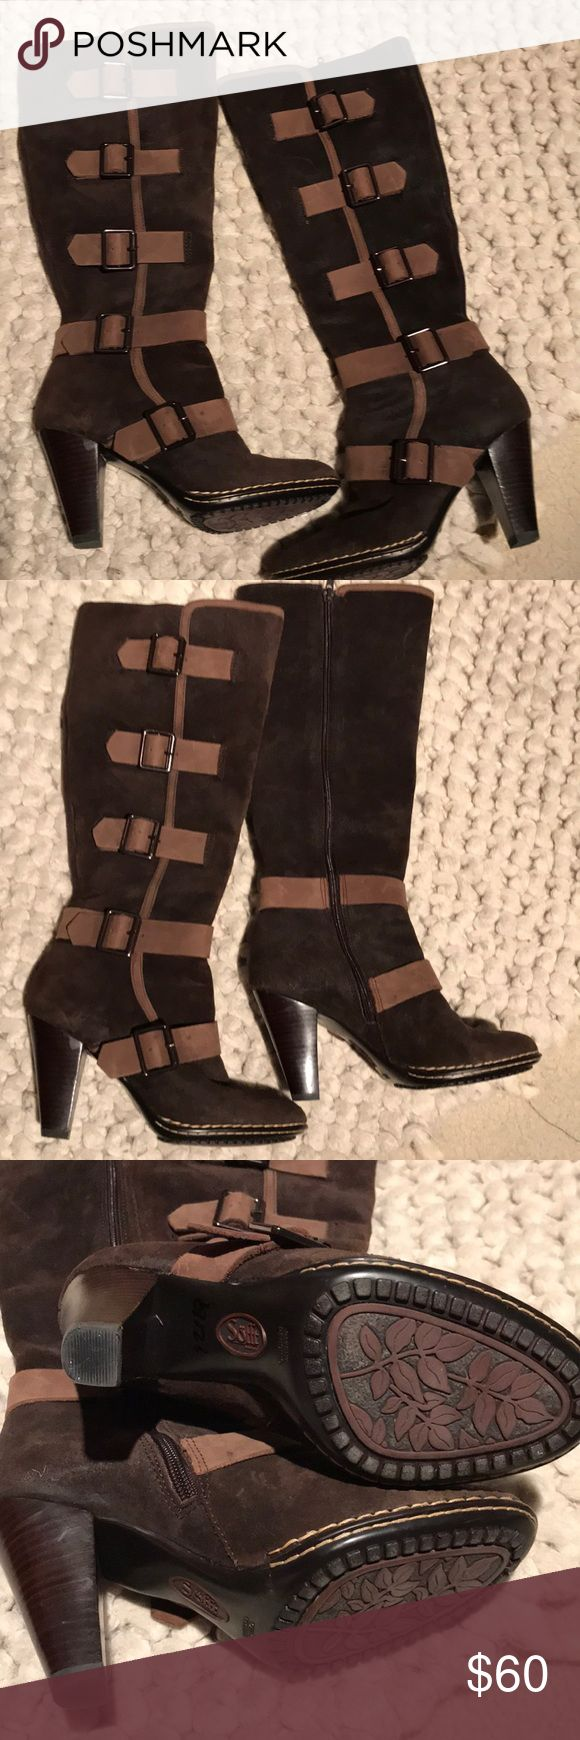 Sofft two tone buckle boots Sofft two toned, chocolate brown suede with lighter brown on buckles, heeled boot, very comfortable. Sofft Shoes Heeled Boots